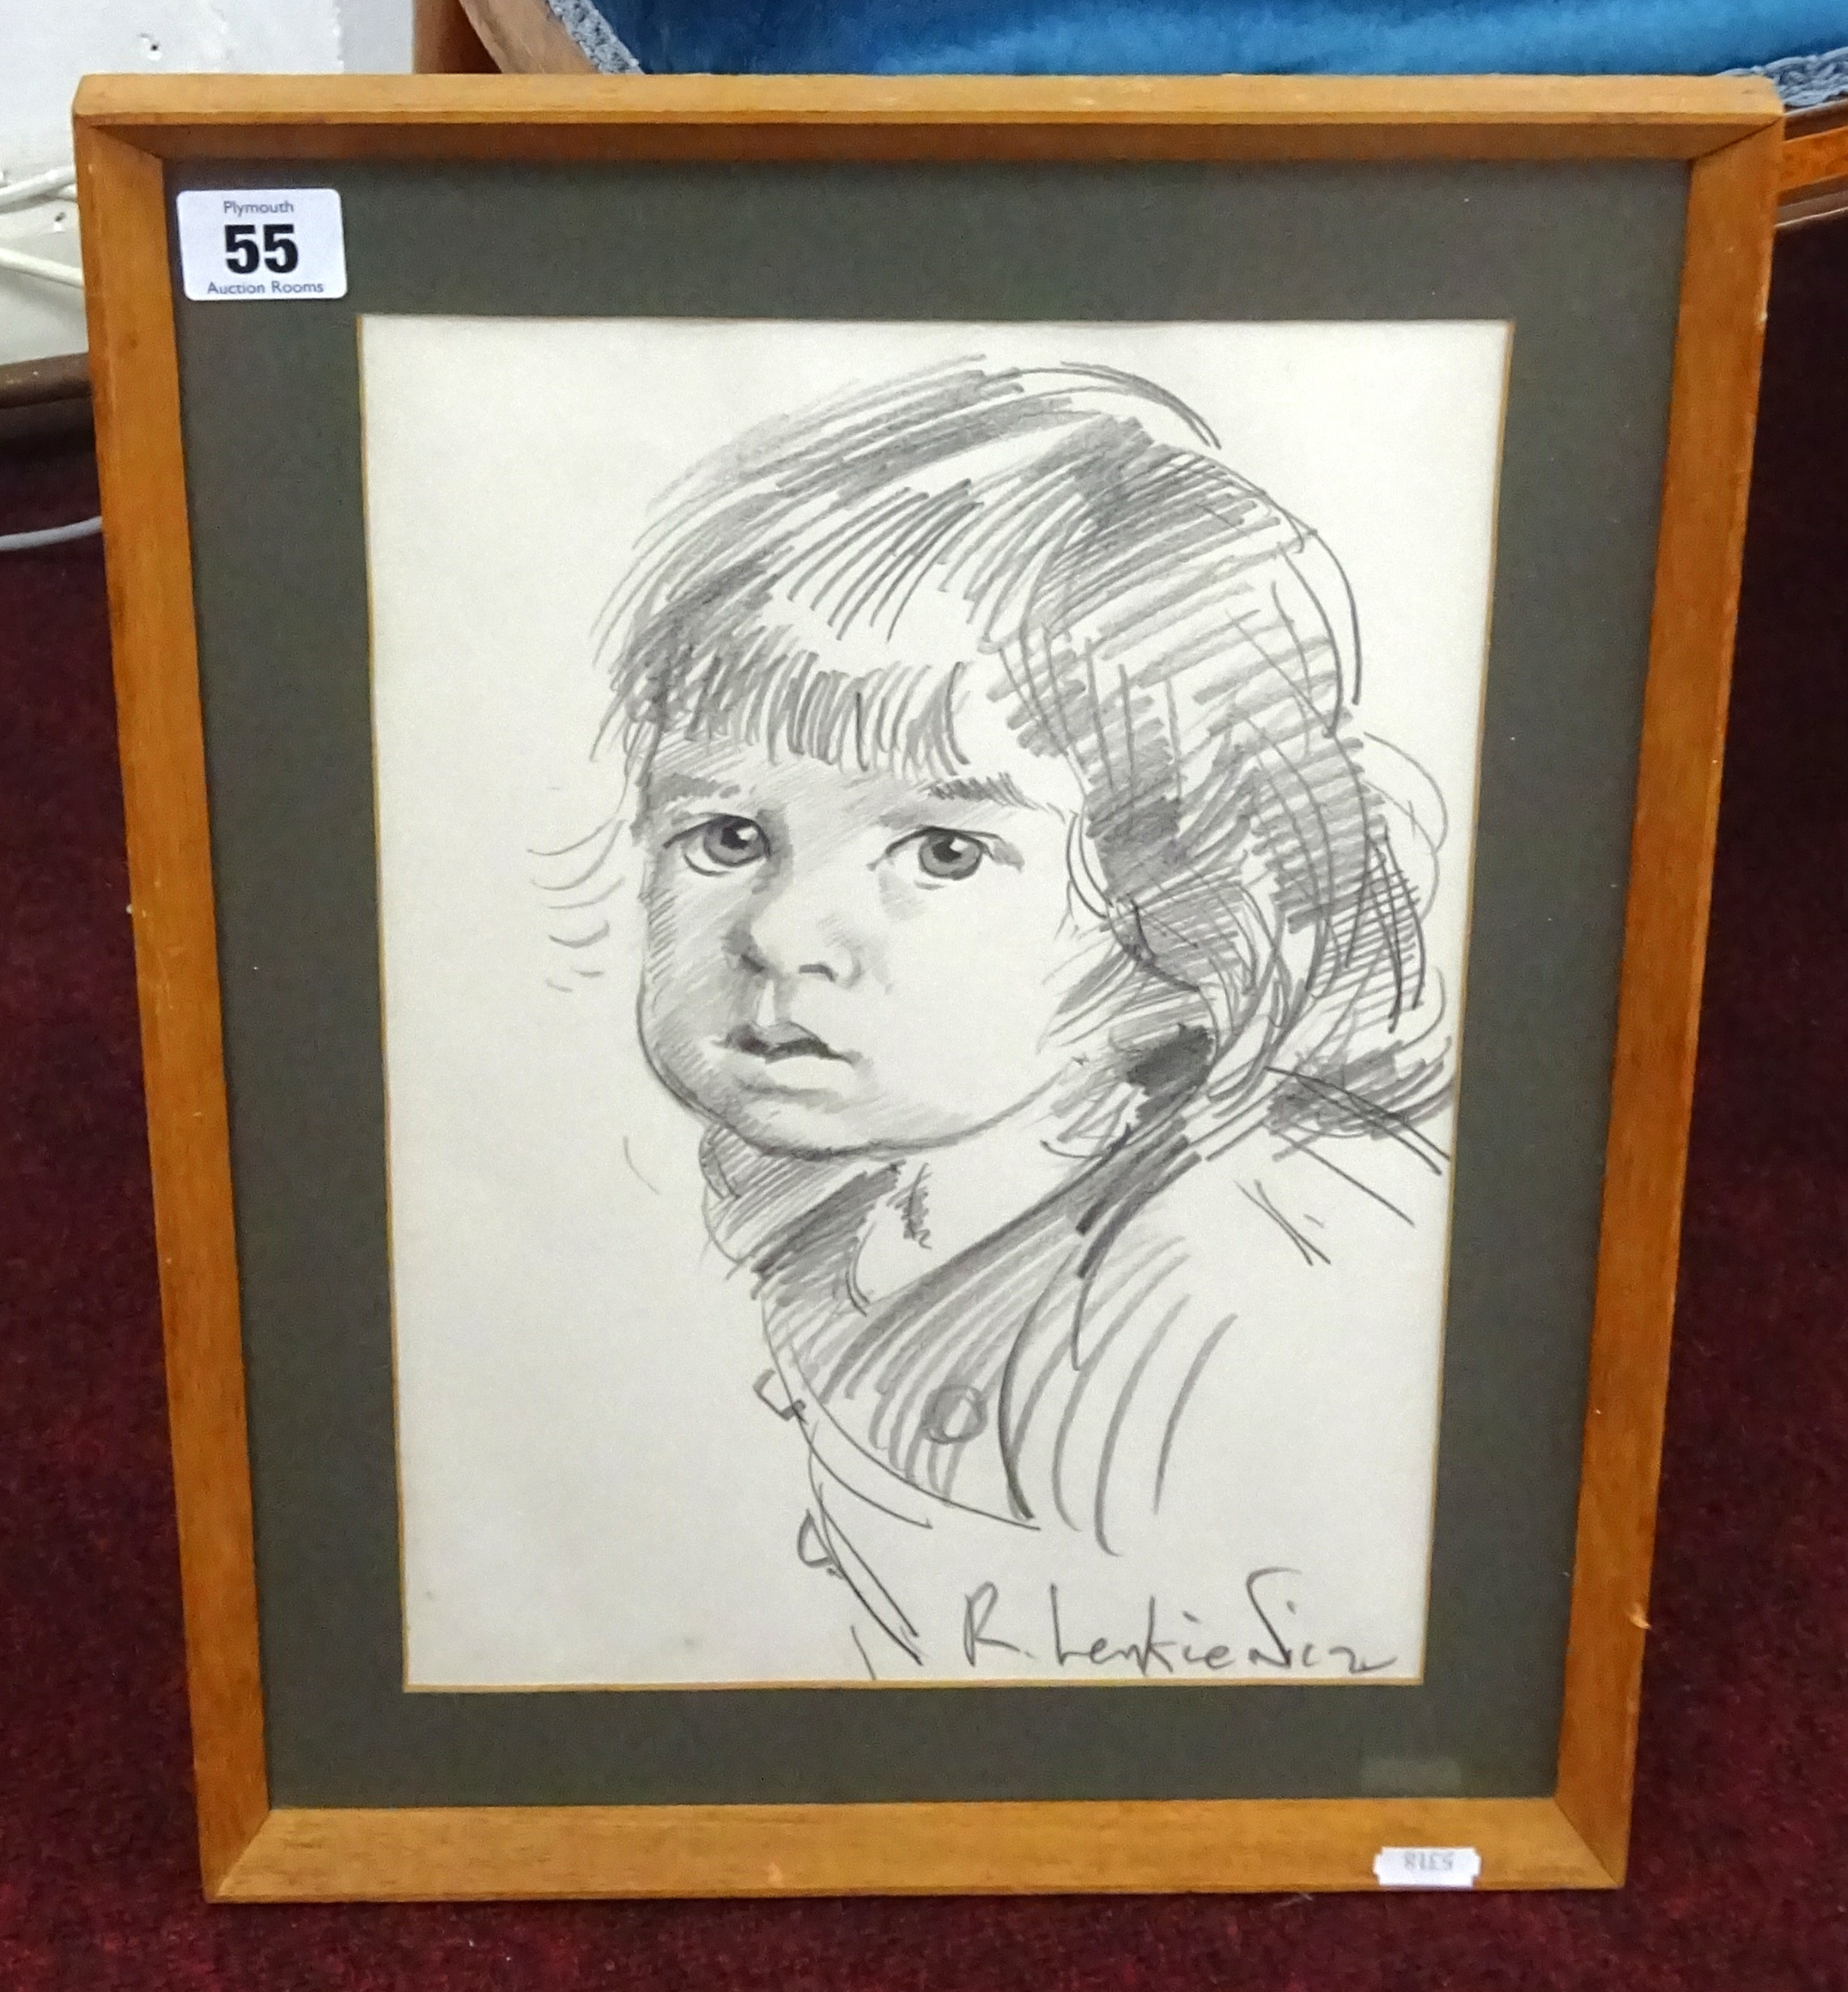 Lot 055 - Robert Lenkiewicz (1941-2002) pencil portrait sketch, circa 1970, signed, framed and glazed, 32cm